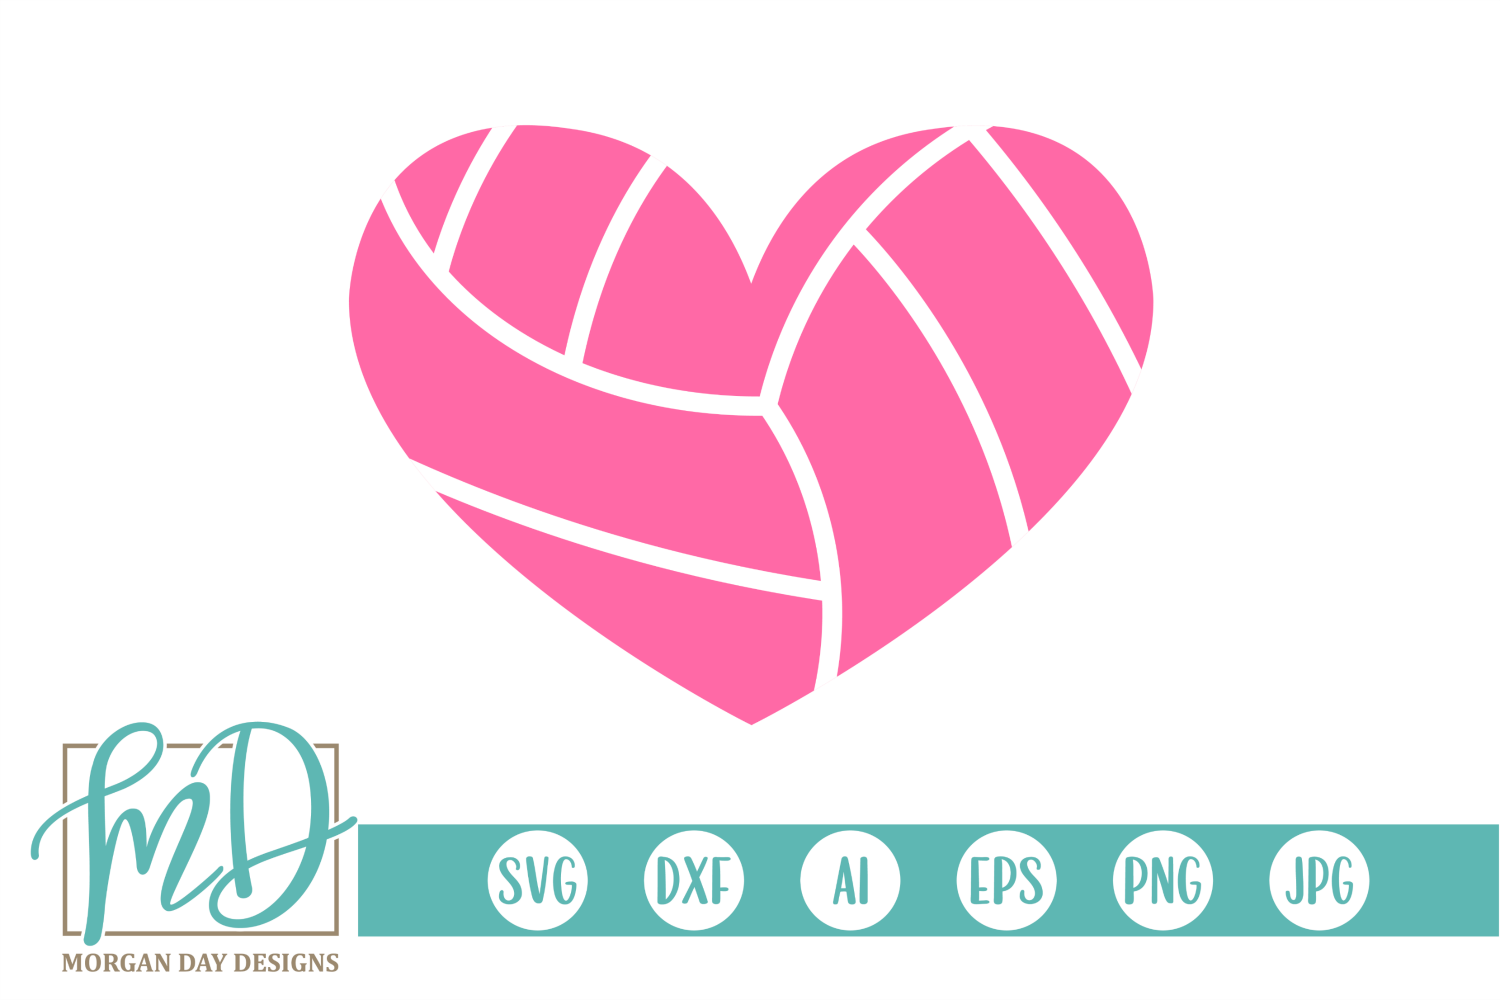 Download Free Volleyball Heart Graphic By Morgan Day Designs Creative Fabrica for Cricut Explore, Silhouette and other cutting machines.